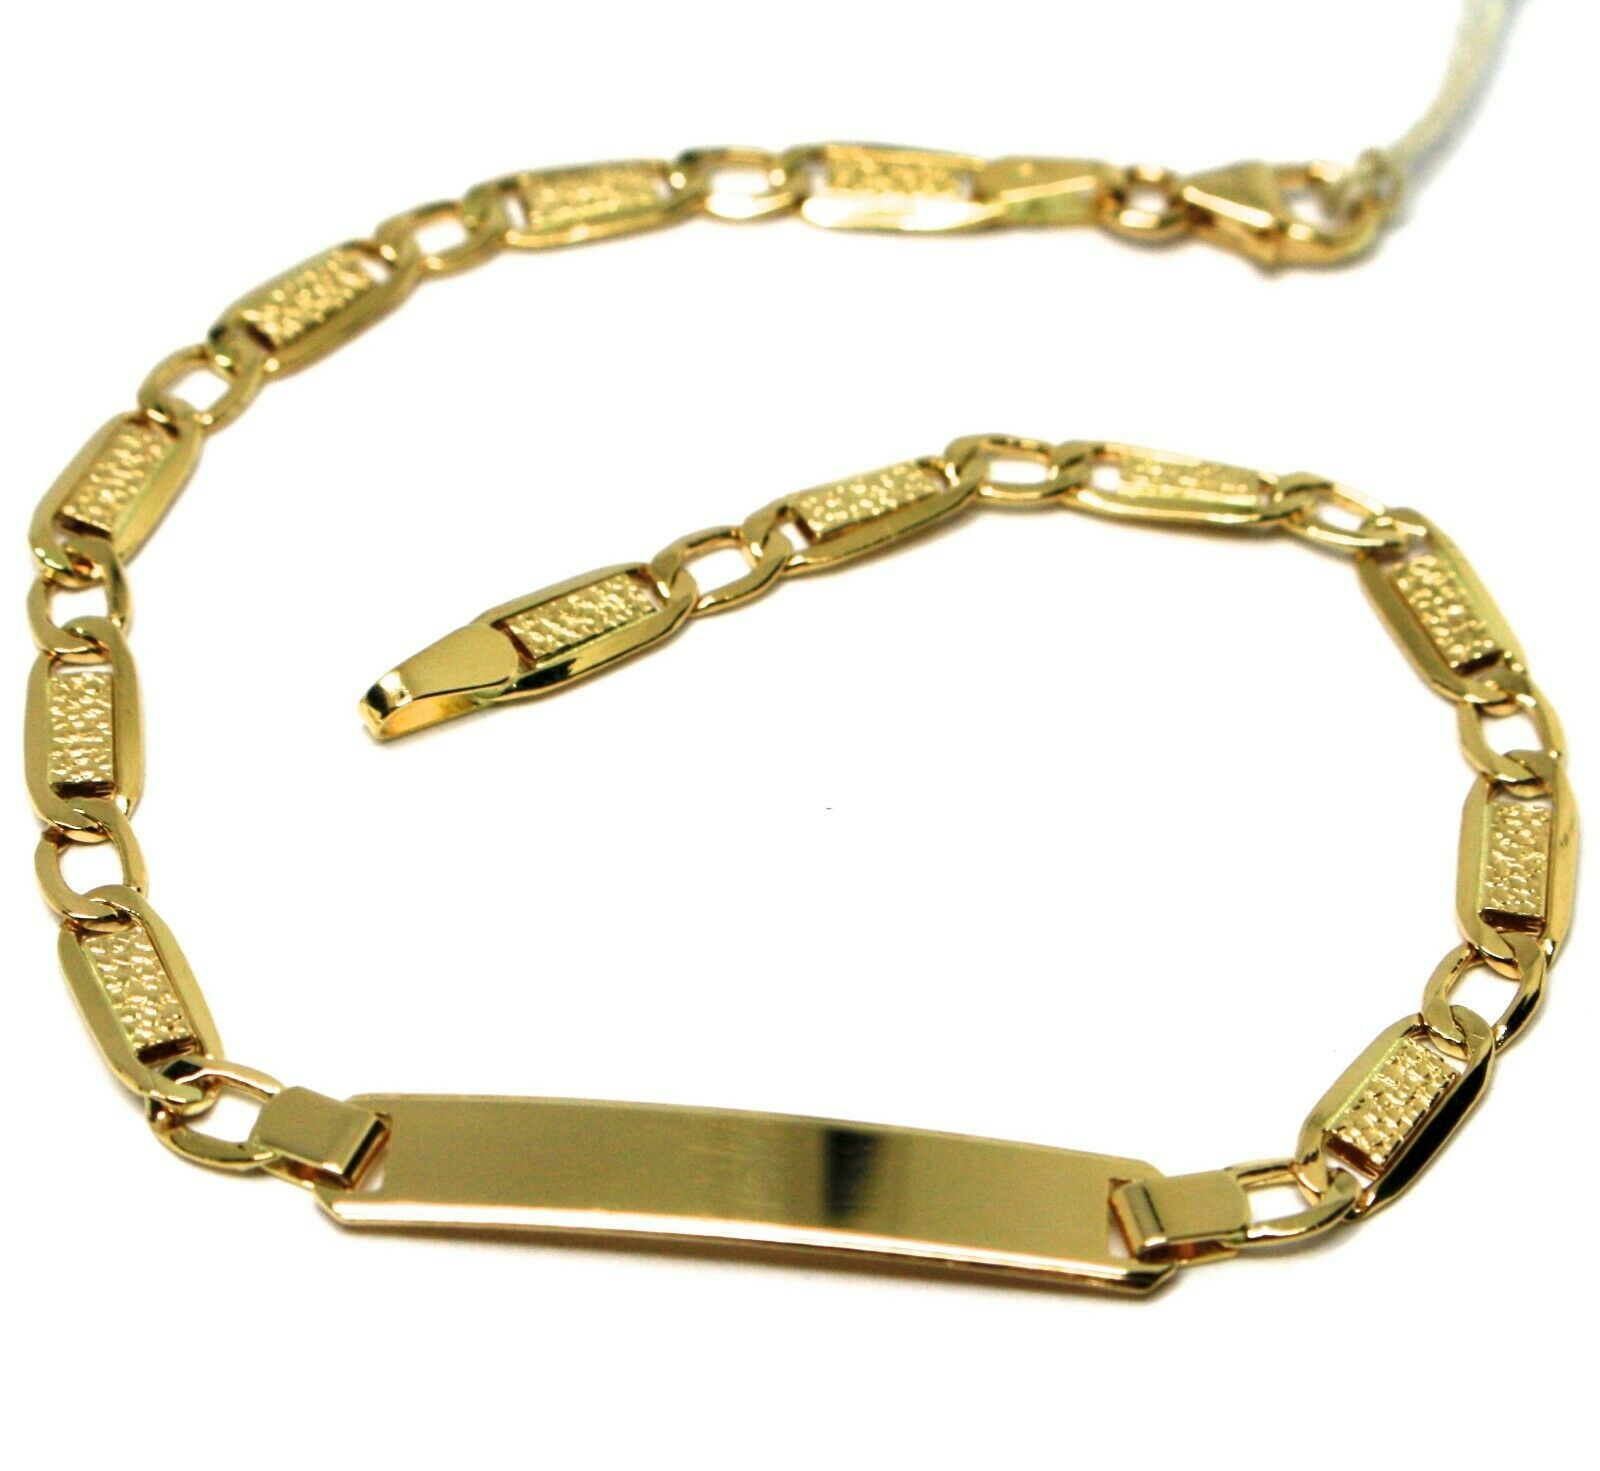 BRACELET YELLOW GOLD 18K 750, INSERTED RECTANGULAR, OVALS, BUBBLES, PLATE